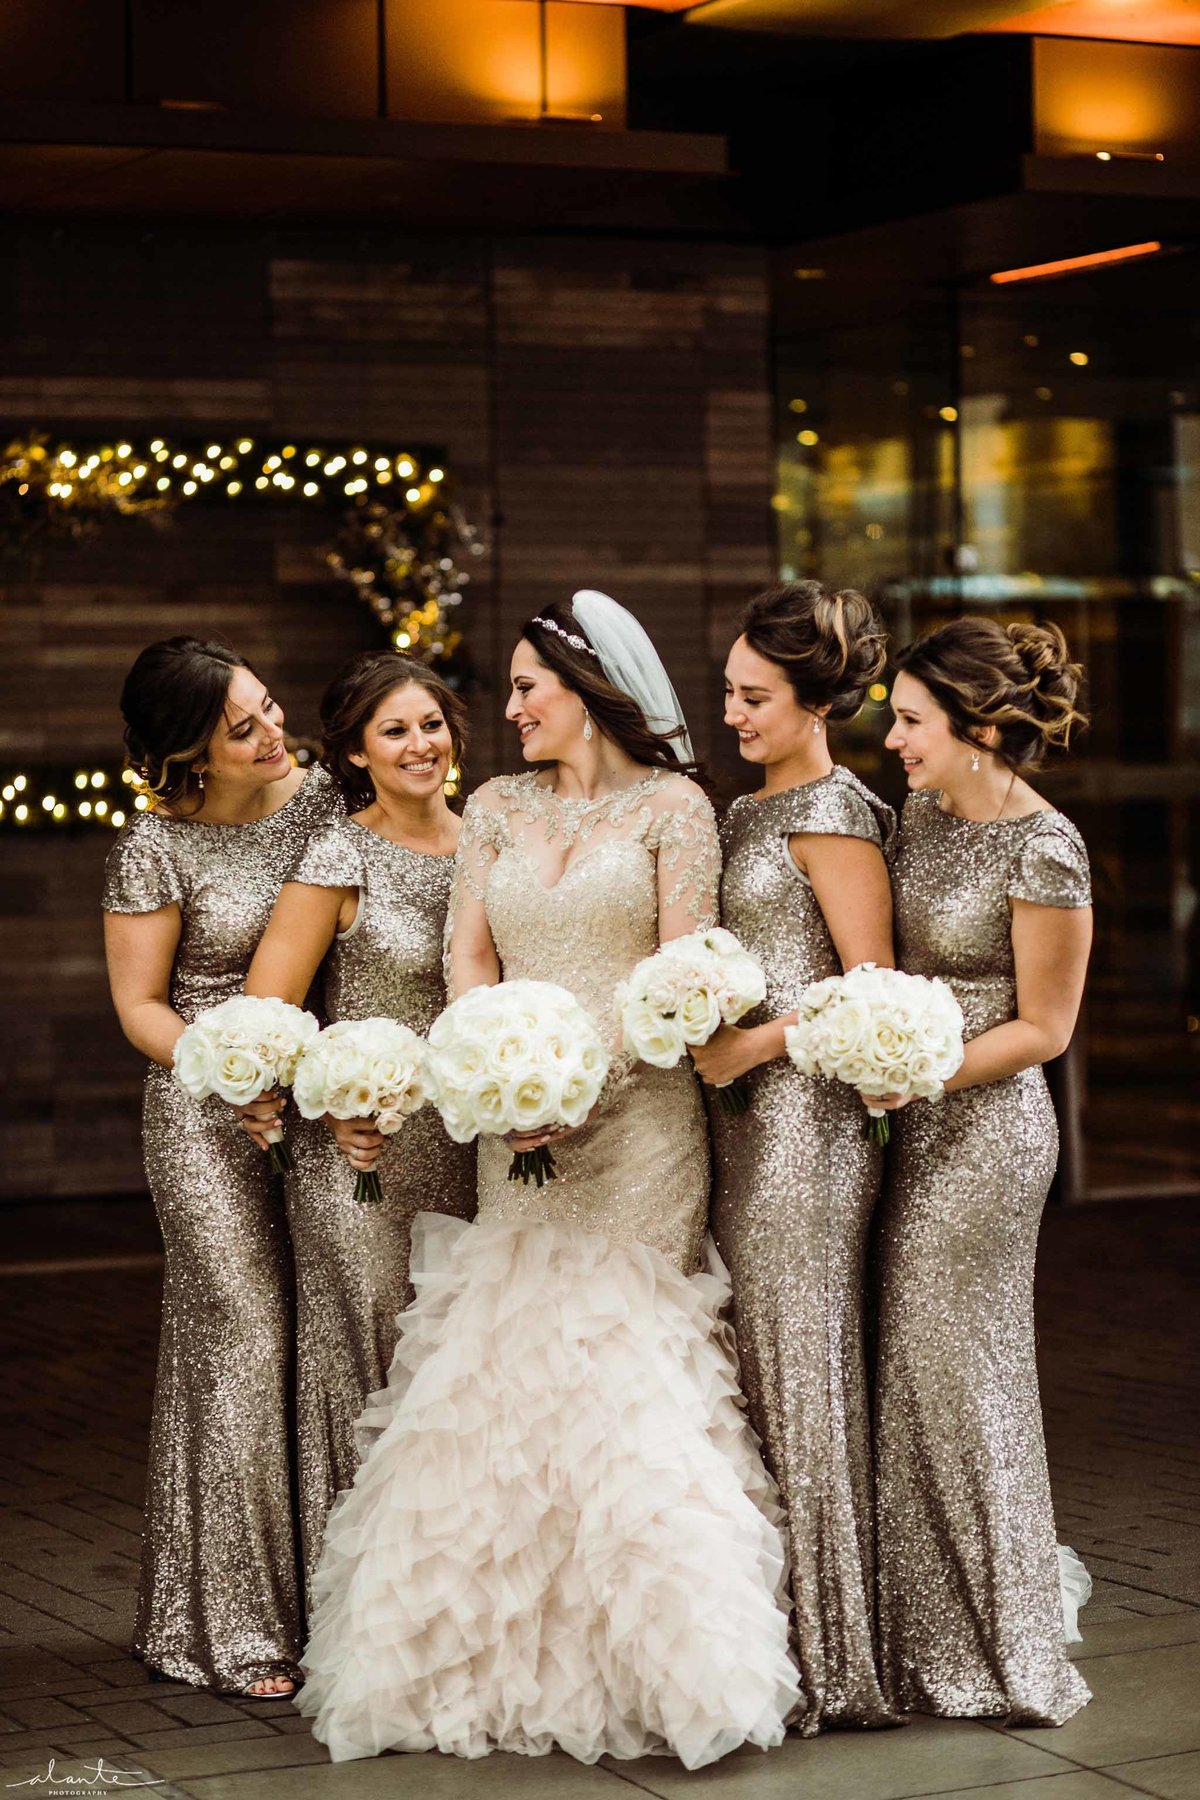 Glamorous bride and her bridesmaids dressed in champagne sequin dresses.